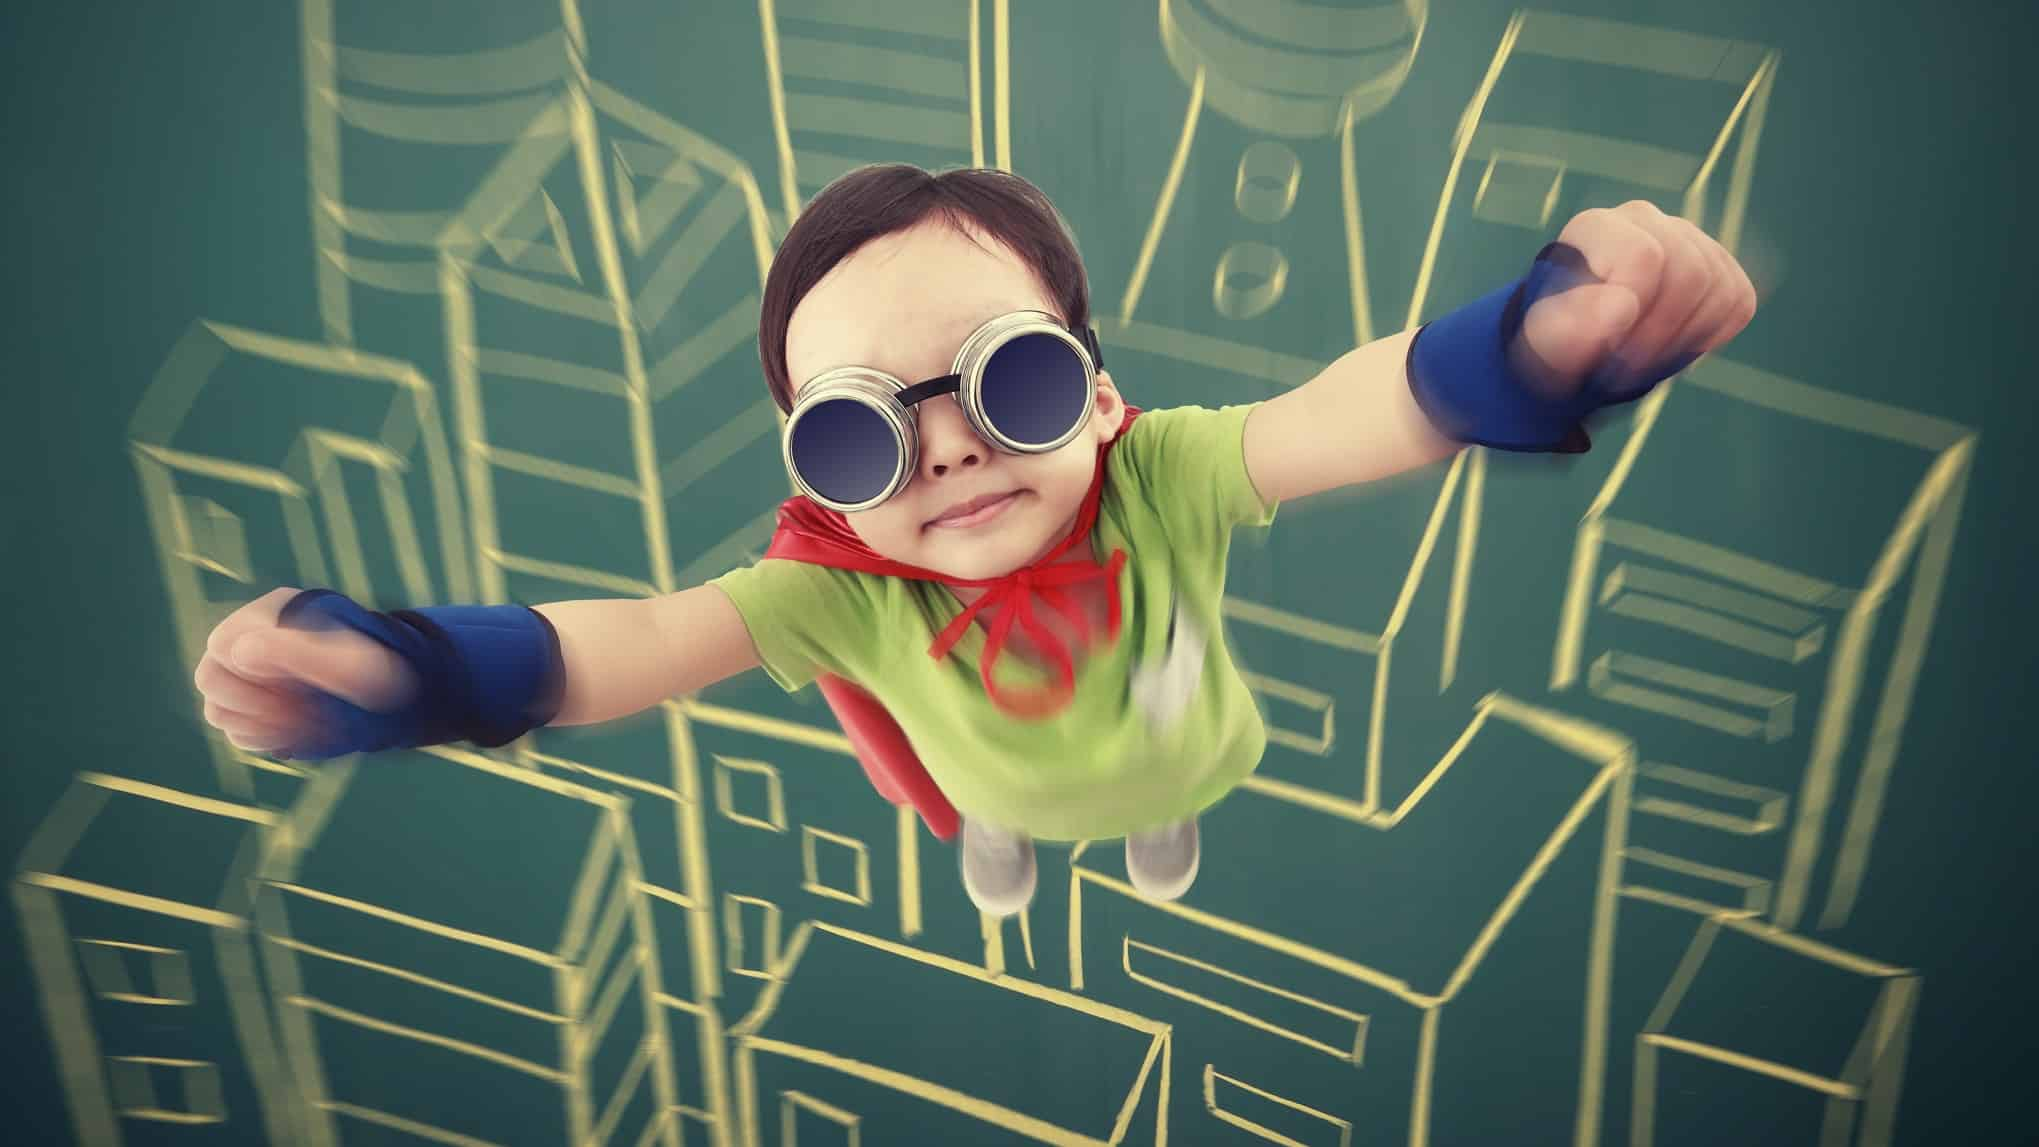 a small boy dressed in a superhero outfit soars into the sky with a graphic backdrop of a cityscape.